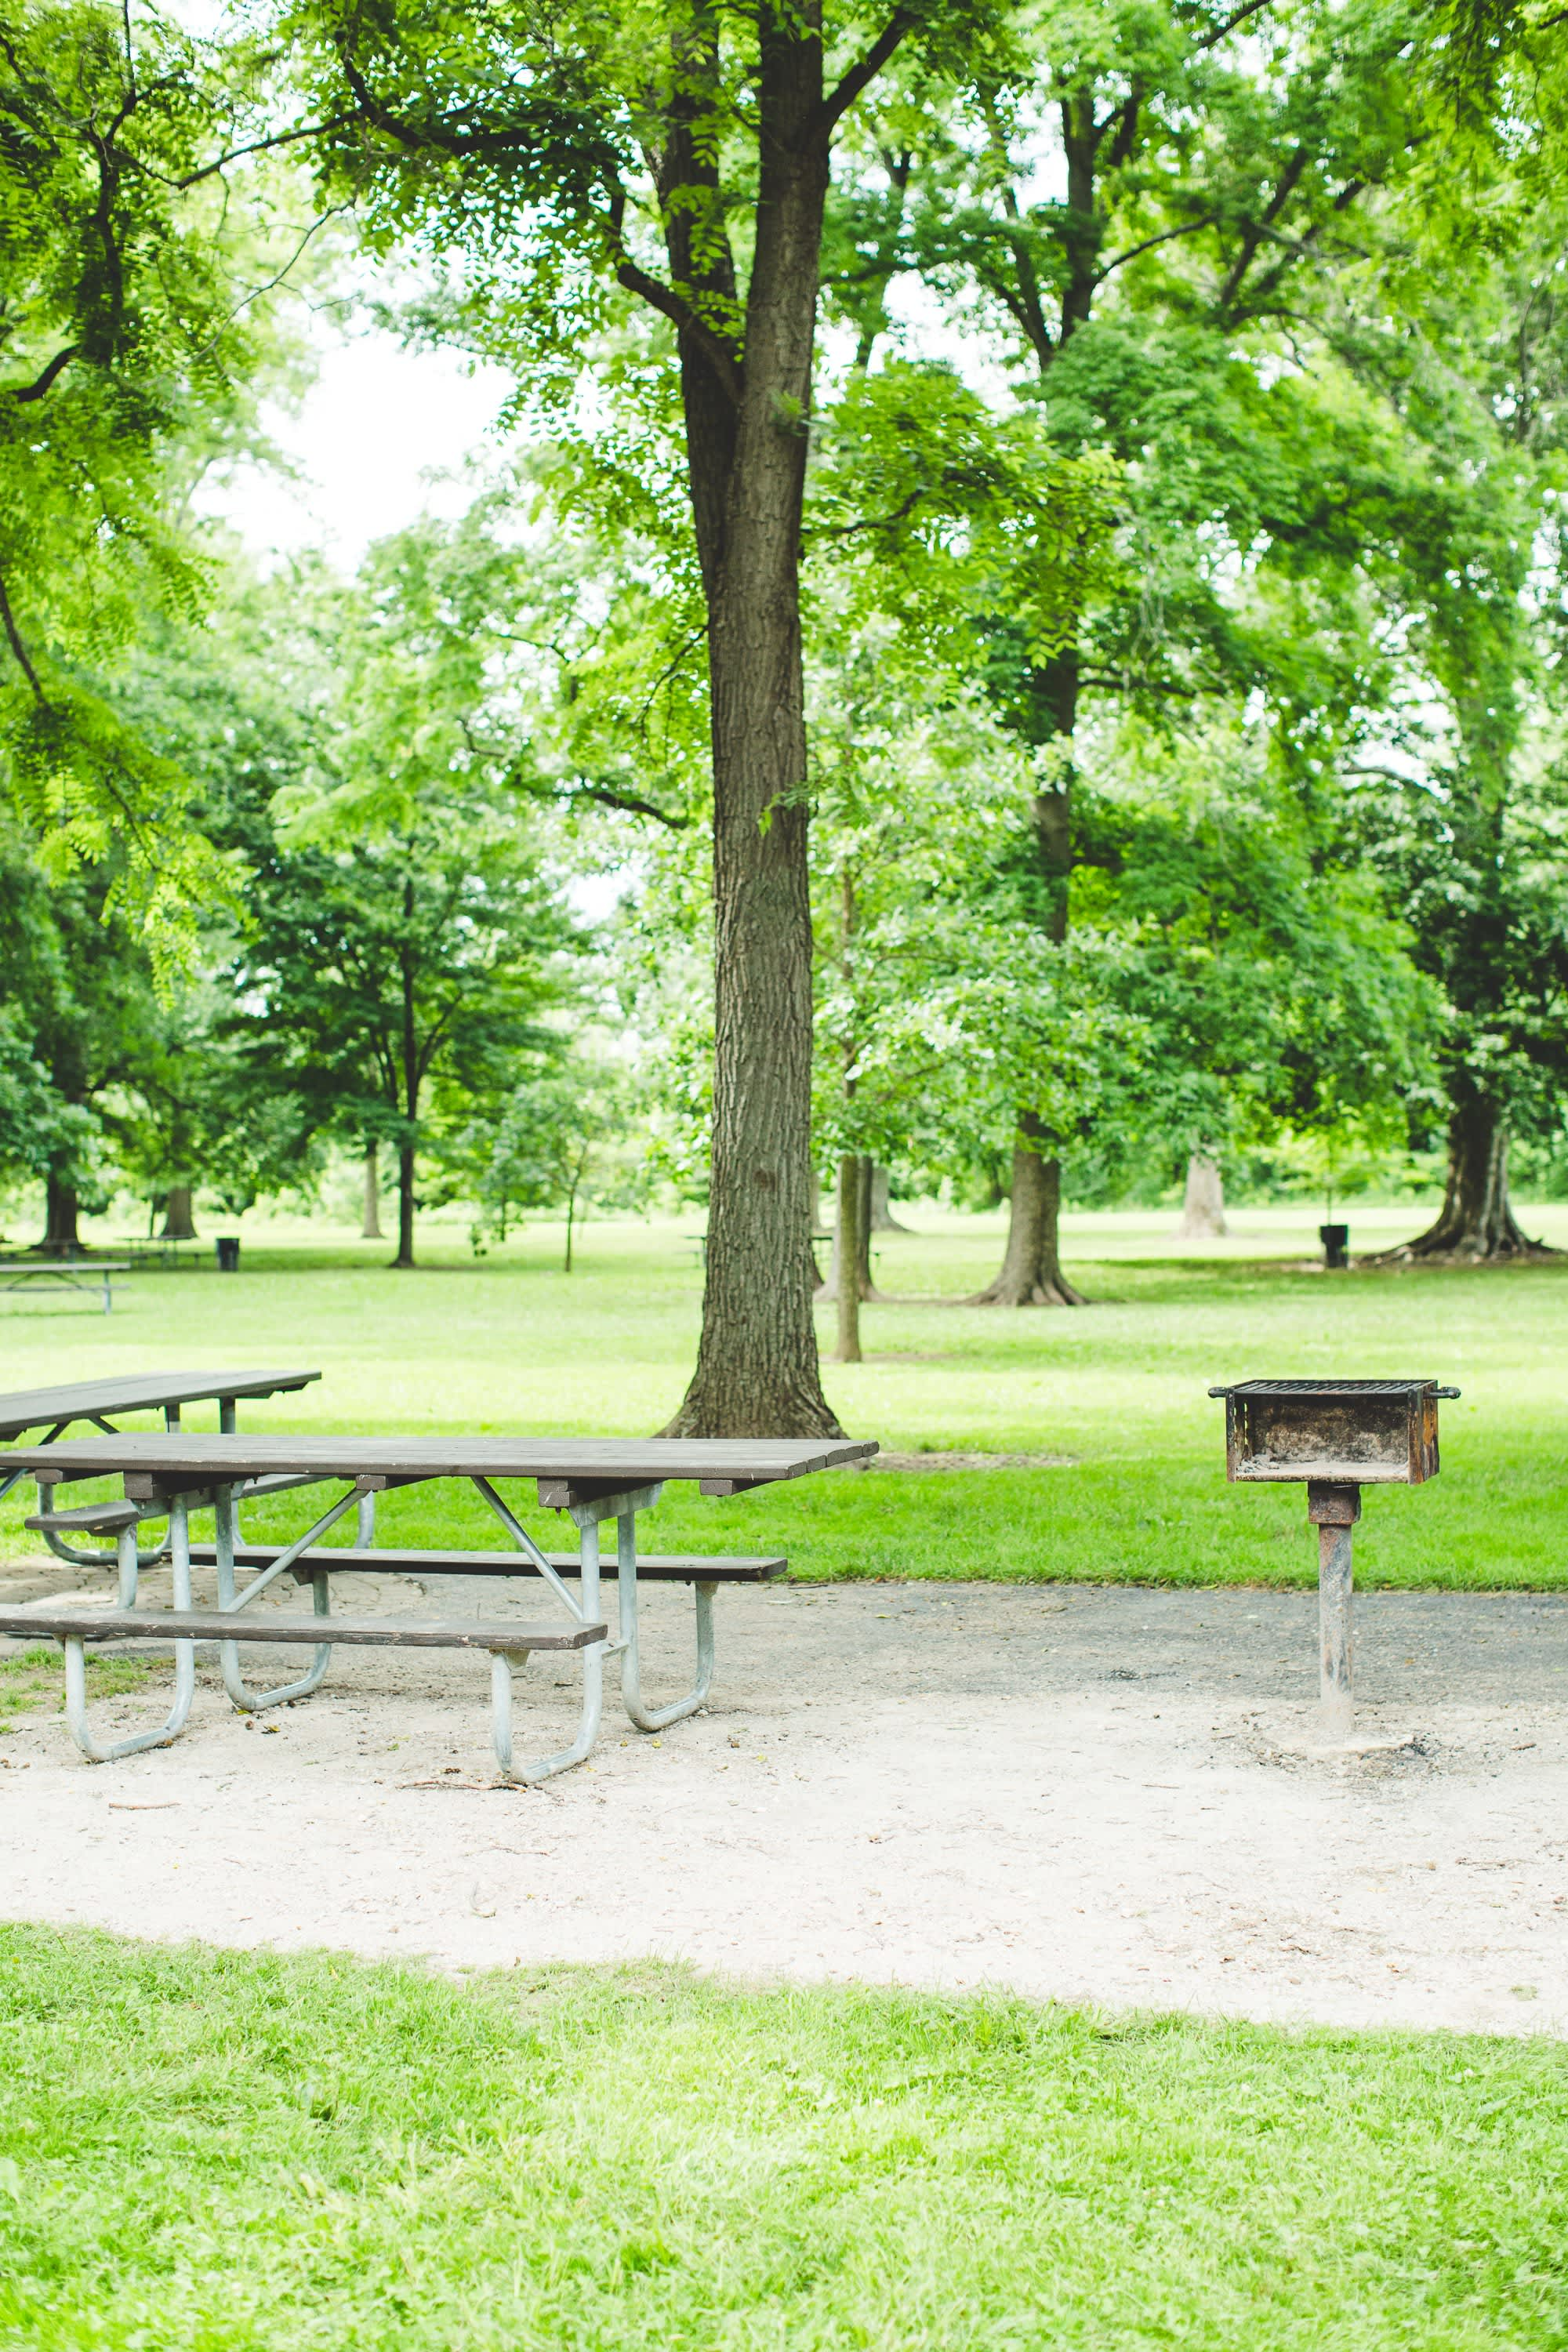 Park Grill and Picnic Benches